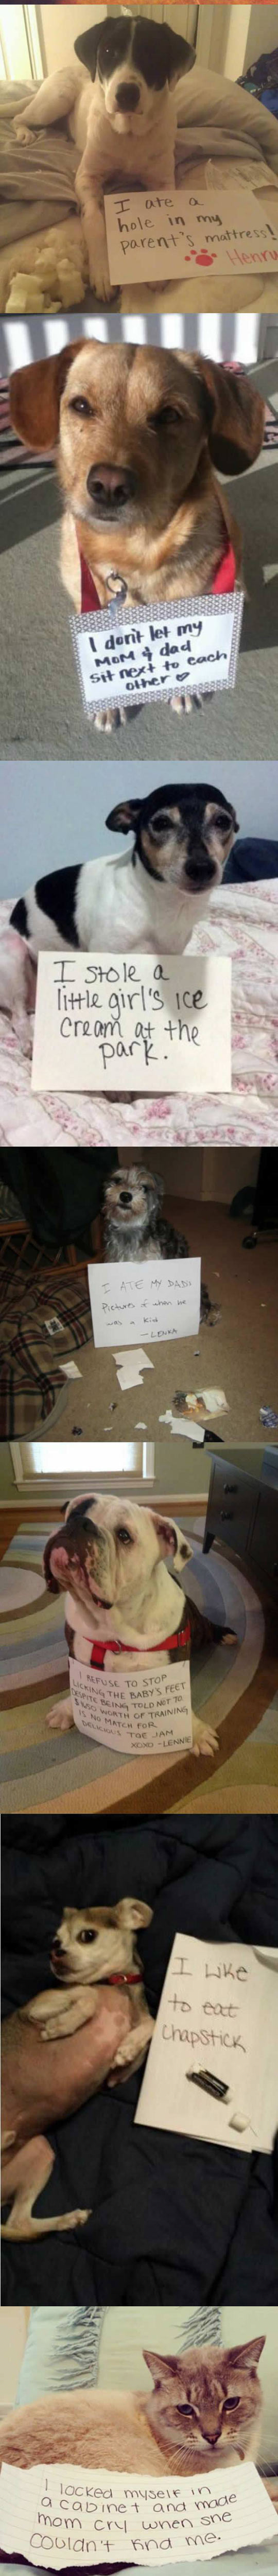 funny-note-shame-dogs-mess-confessions-cat